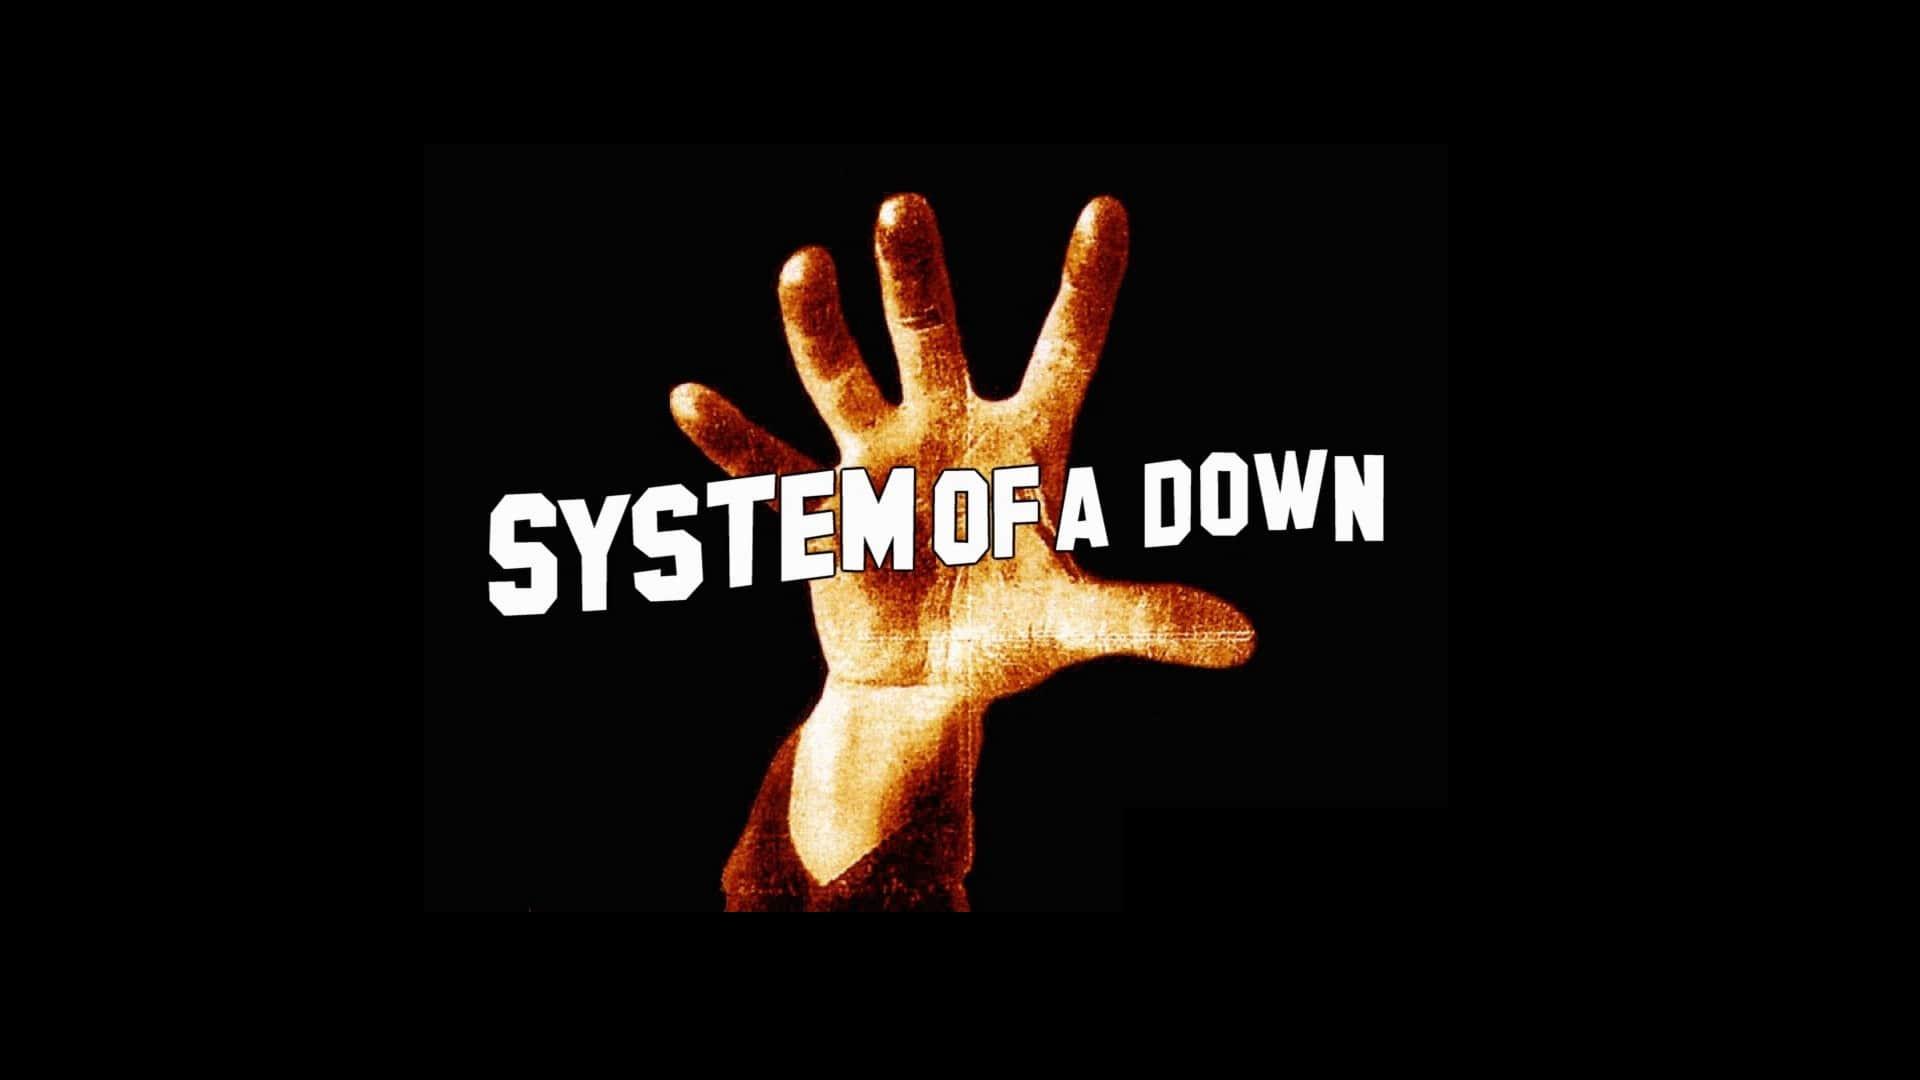 System of a Down Free